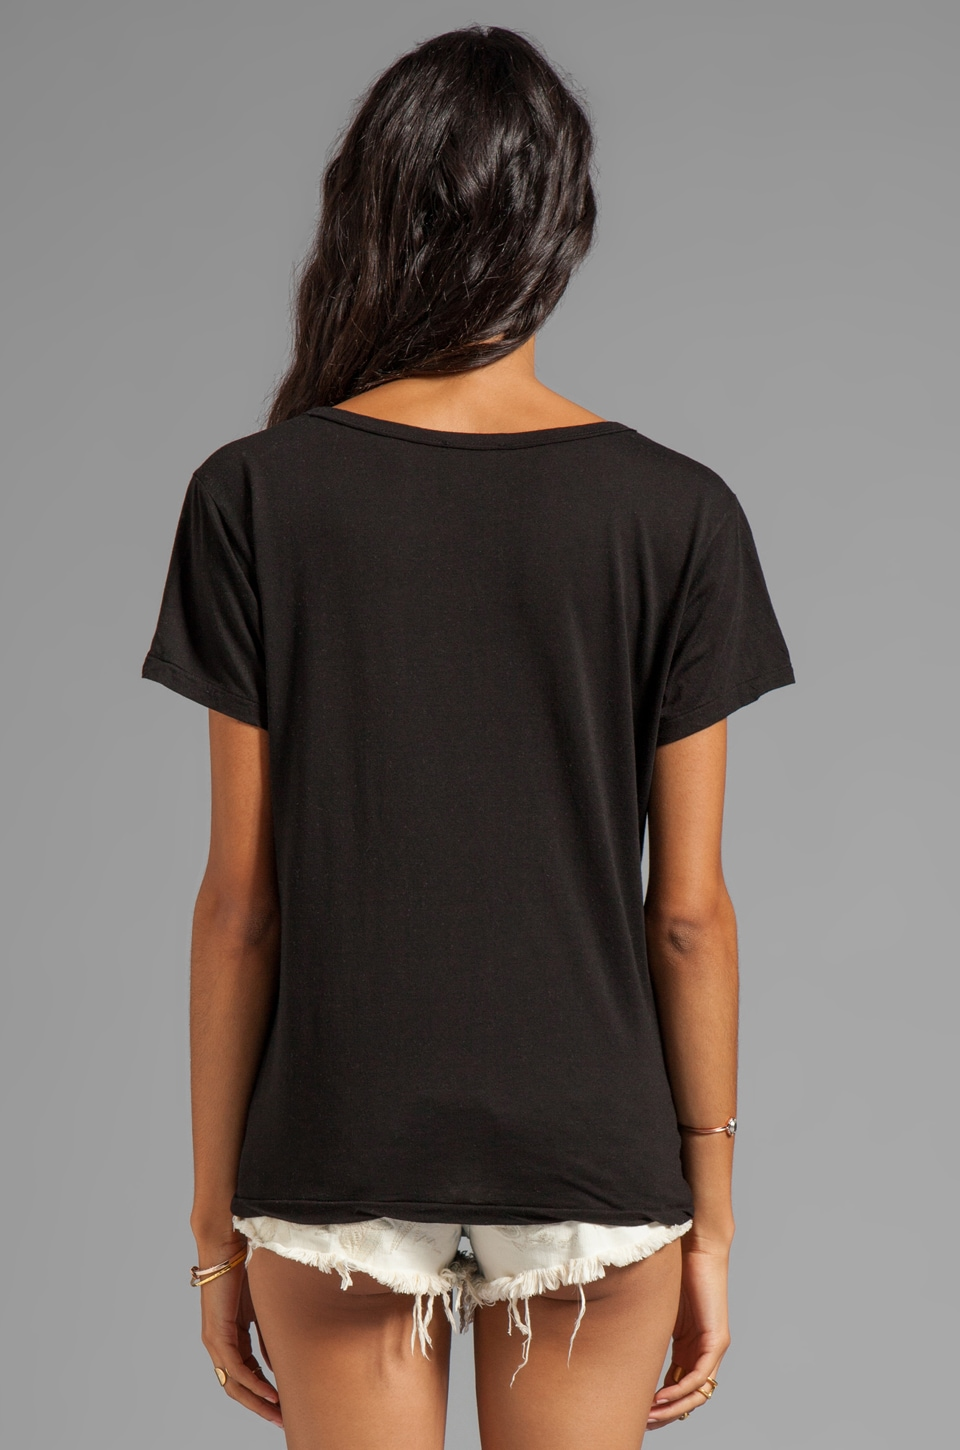 AG Adriano Goldschmied V-Neck Pocket Tee in Black